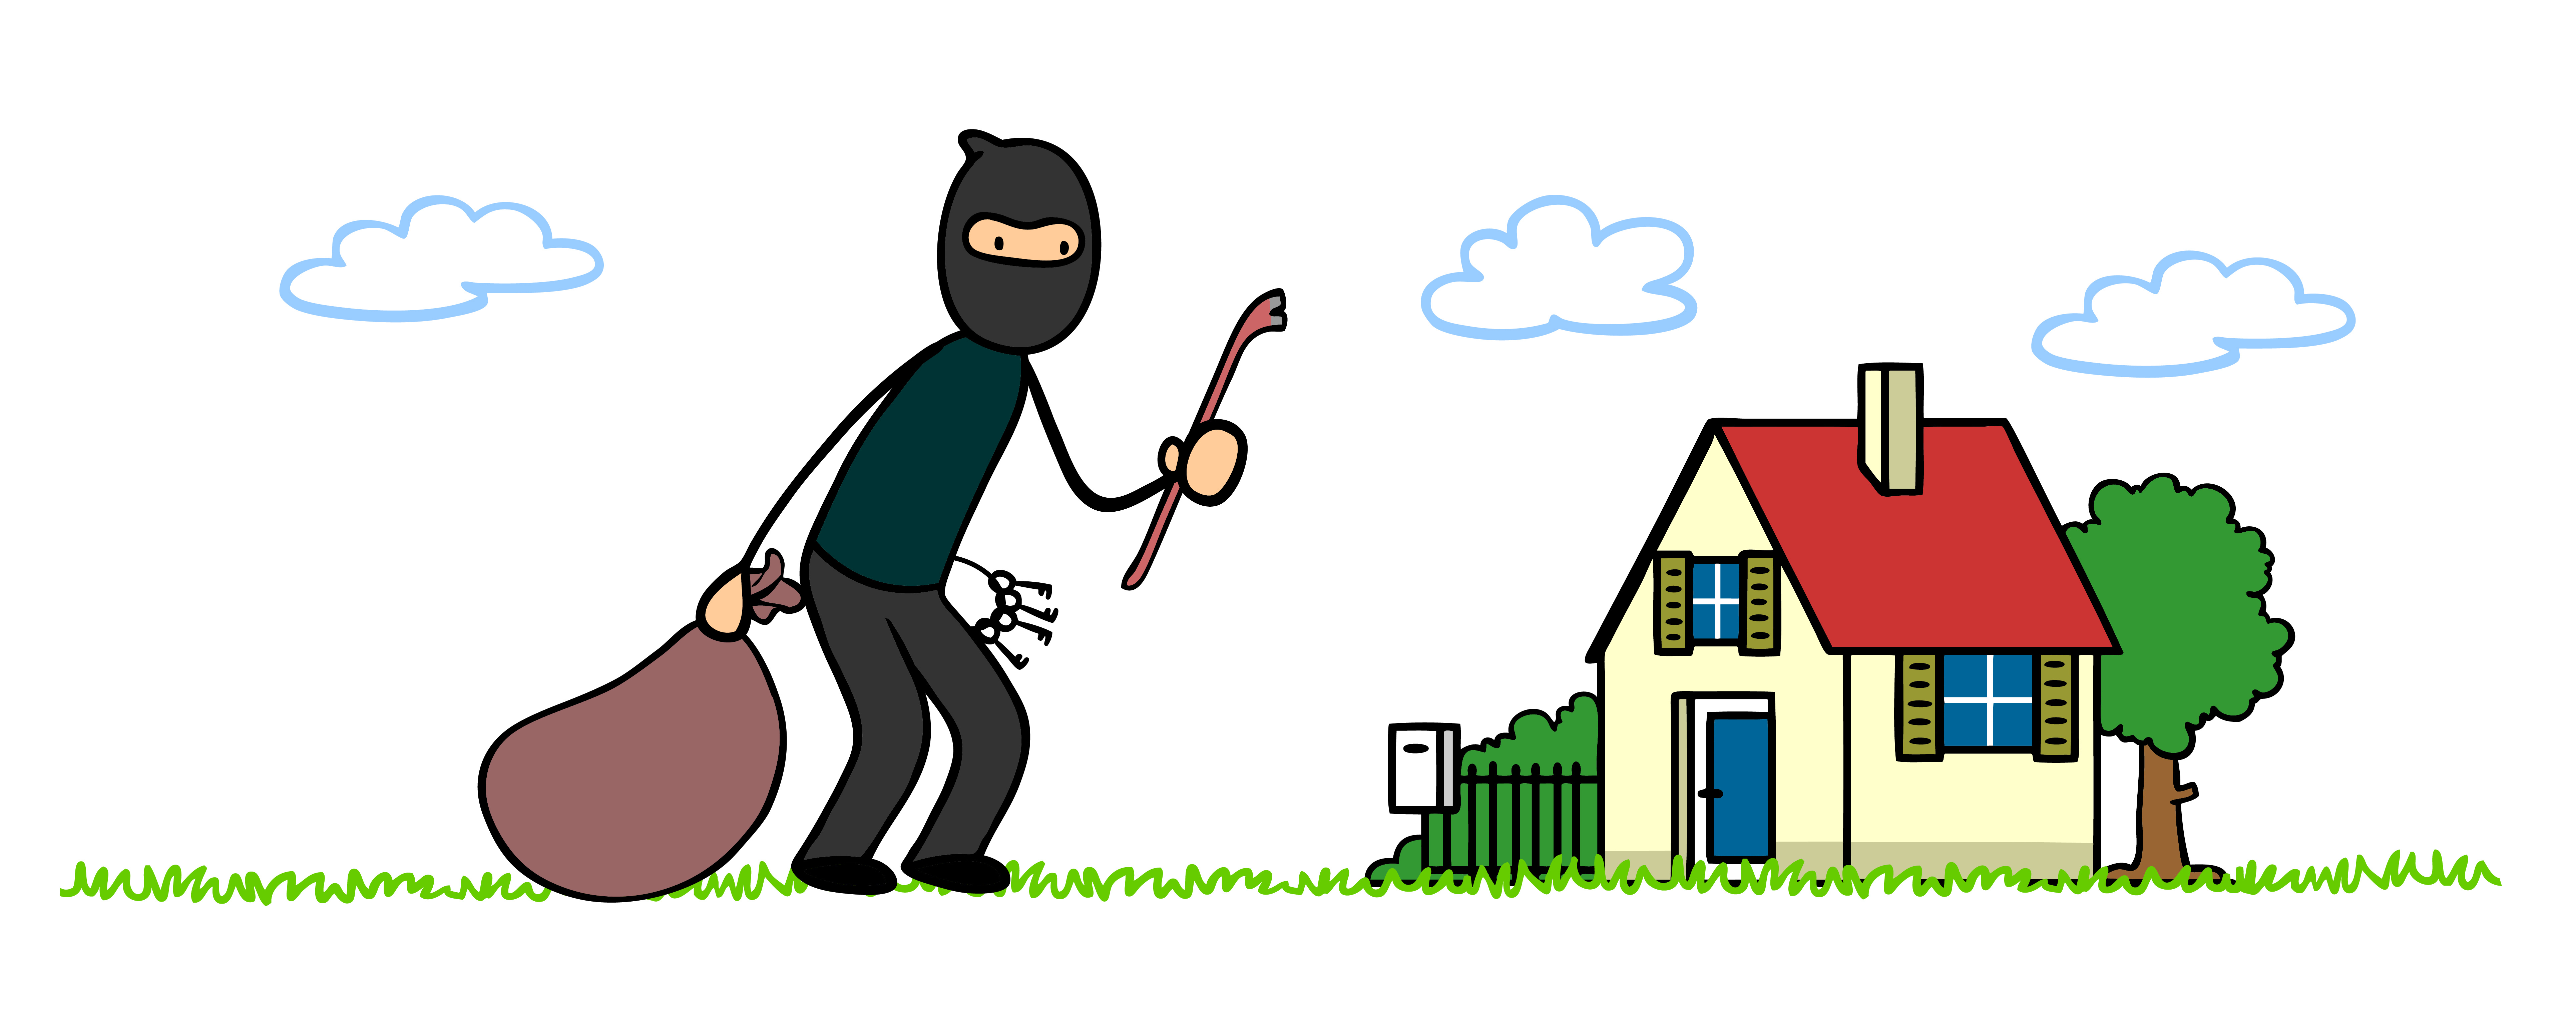 Burglar clipart safe home. Out of the mouths